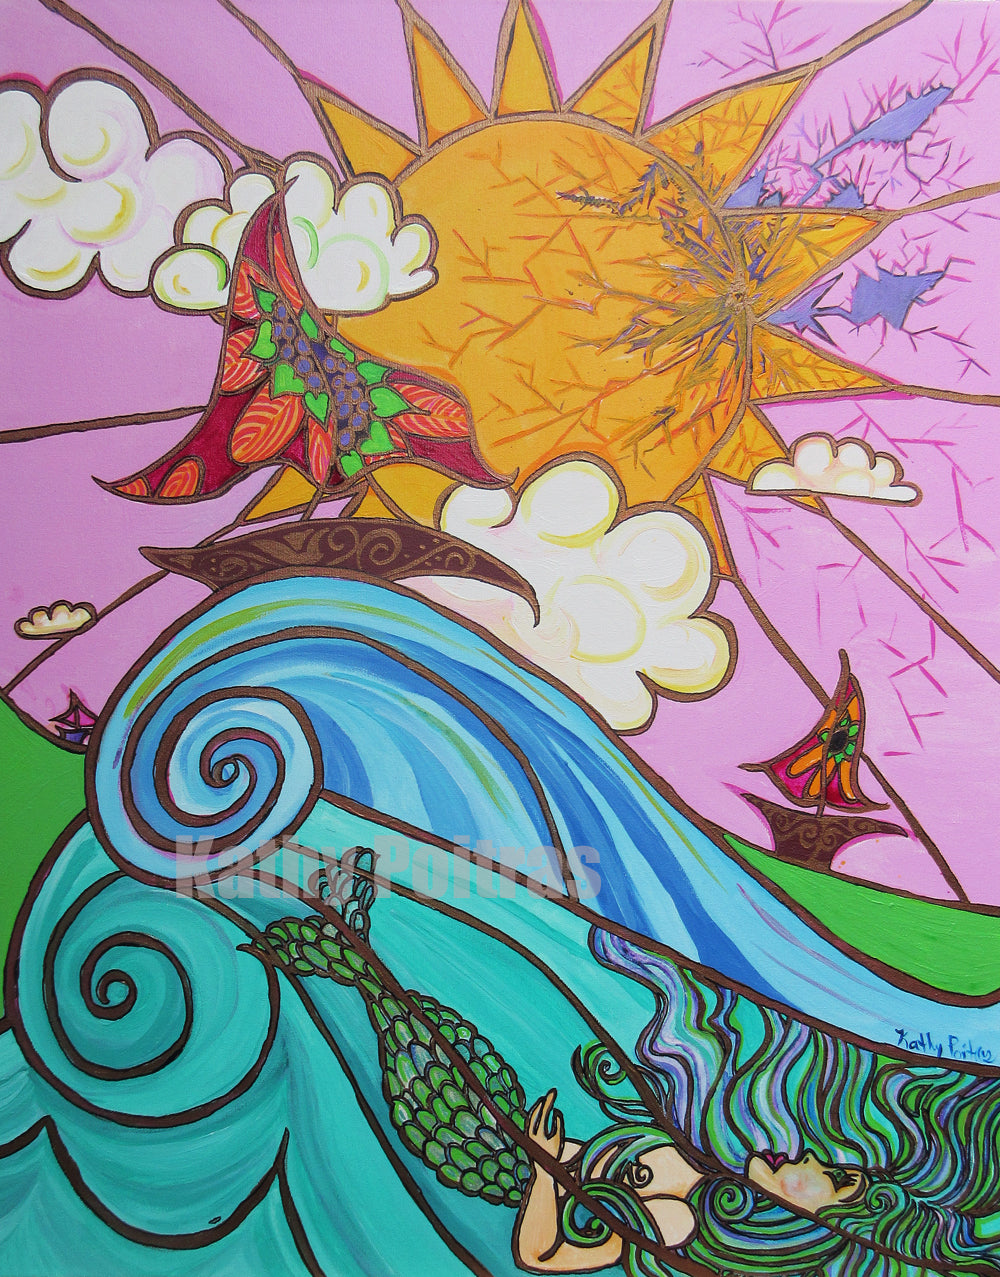 mermaid below huge waves, floral sail boats against a sun. There is a crack in the sun and sky. Has a stained glass look. acrylic painting with heavy gold lines. by artist Kathy Poitras